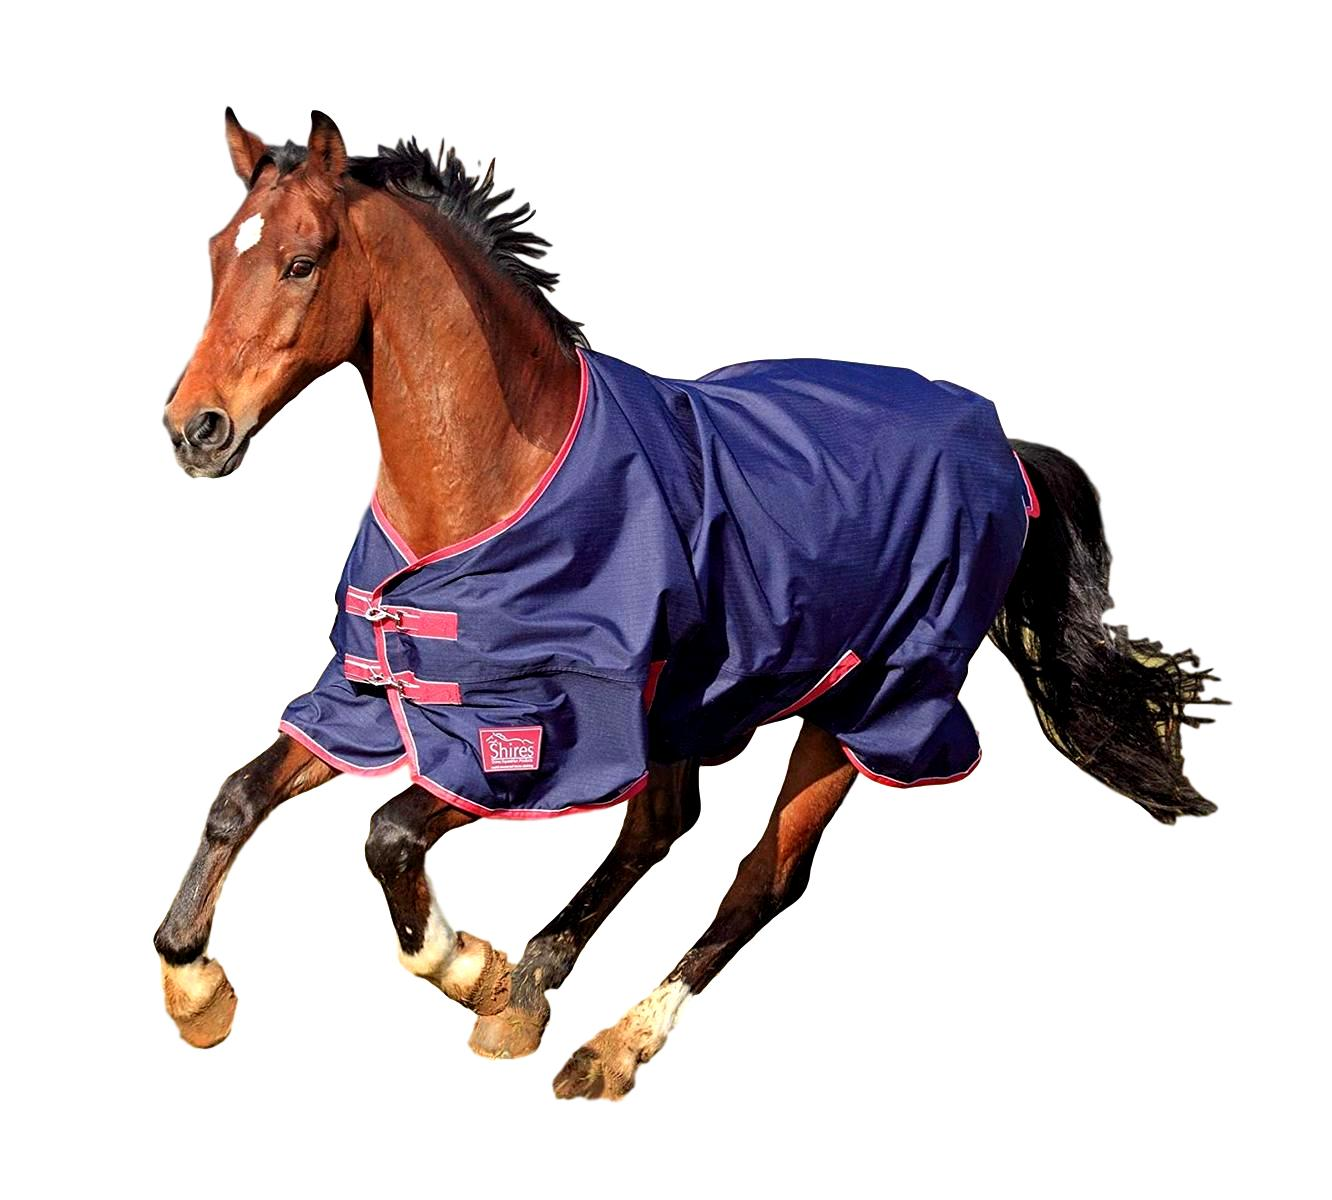 Shires Equestrian Tempest Blanket Lite Original Lite Blanket with 600D Ripstop Outer dd2f7f